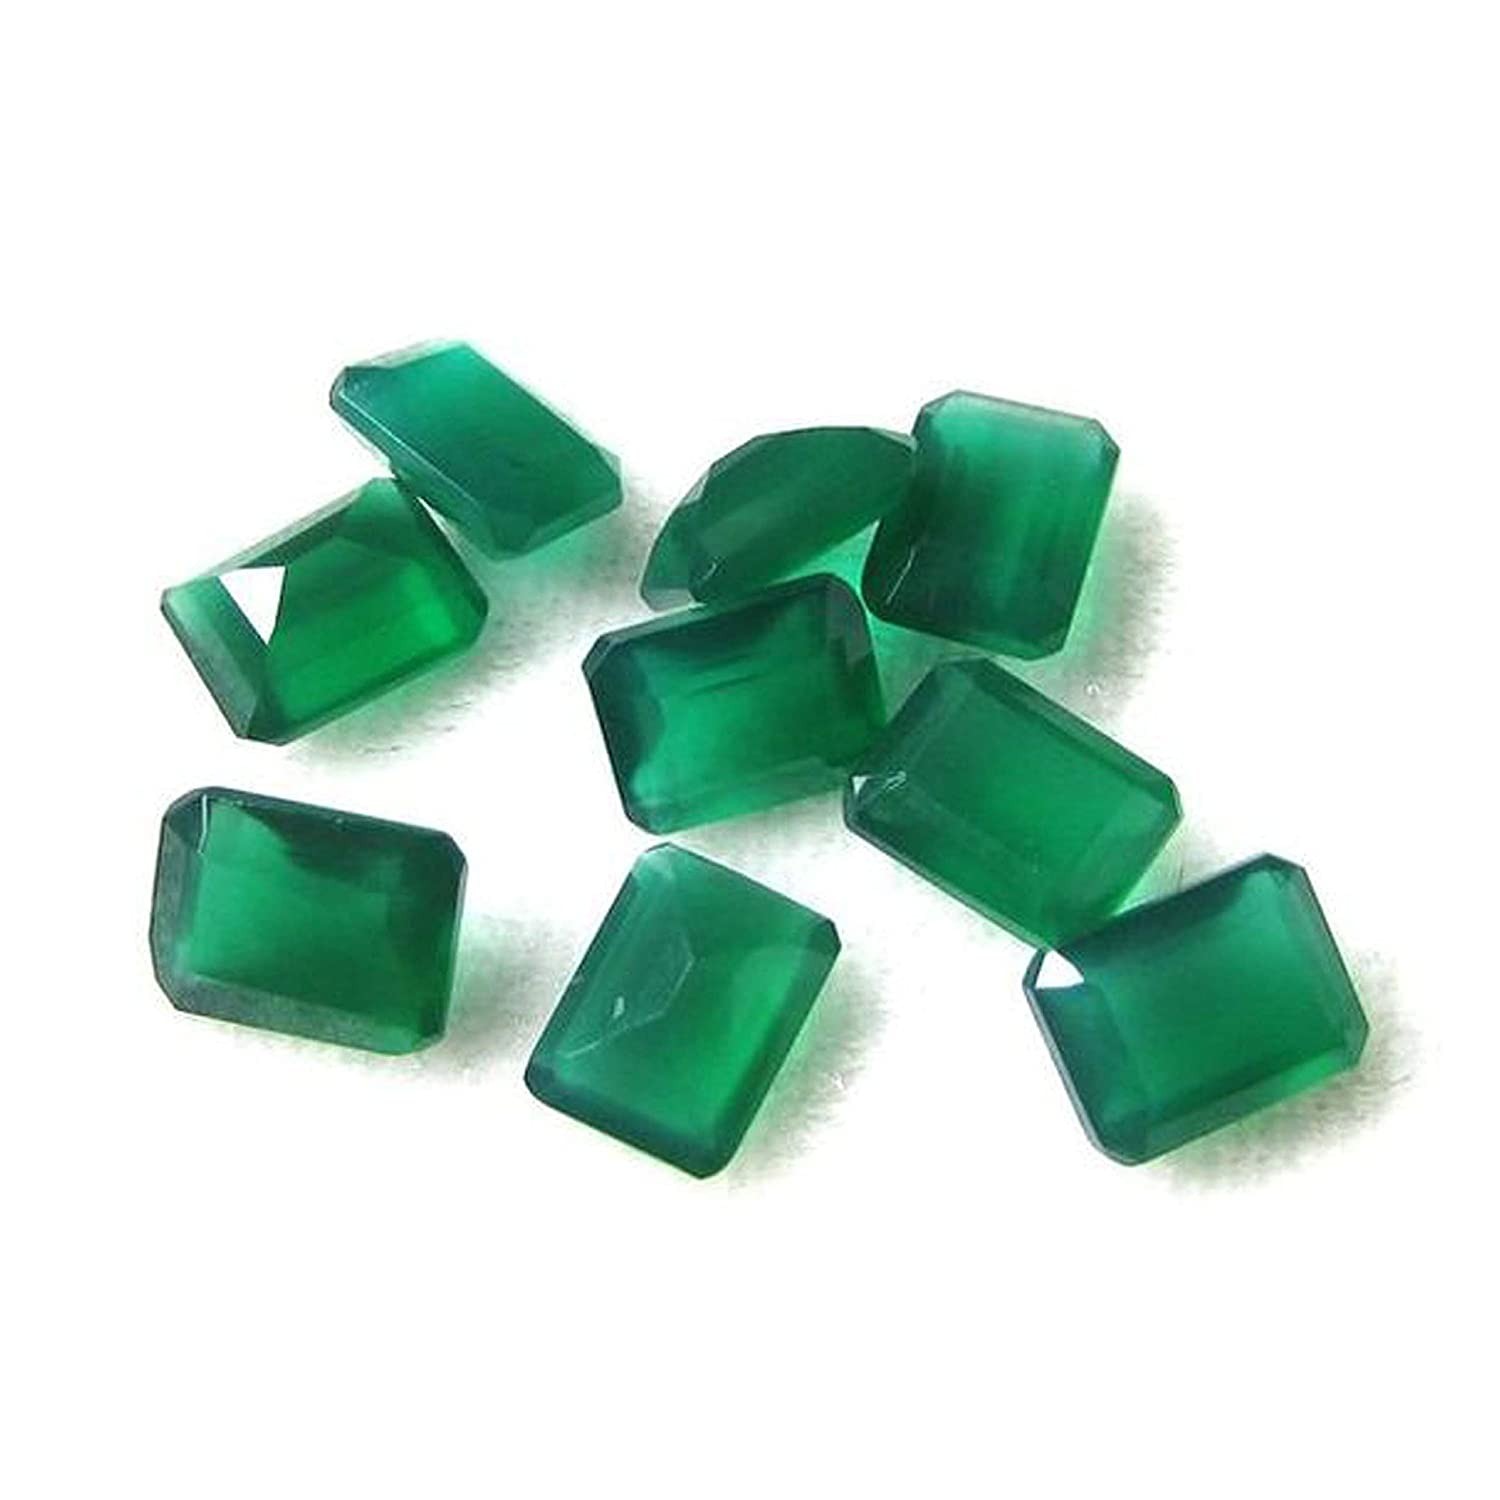 Neerupam collection natural Green Onyx AAA quality 12X10 mm Octagon shape loose gemstone, Natural Green Onyx loose gemstone for jewelry making